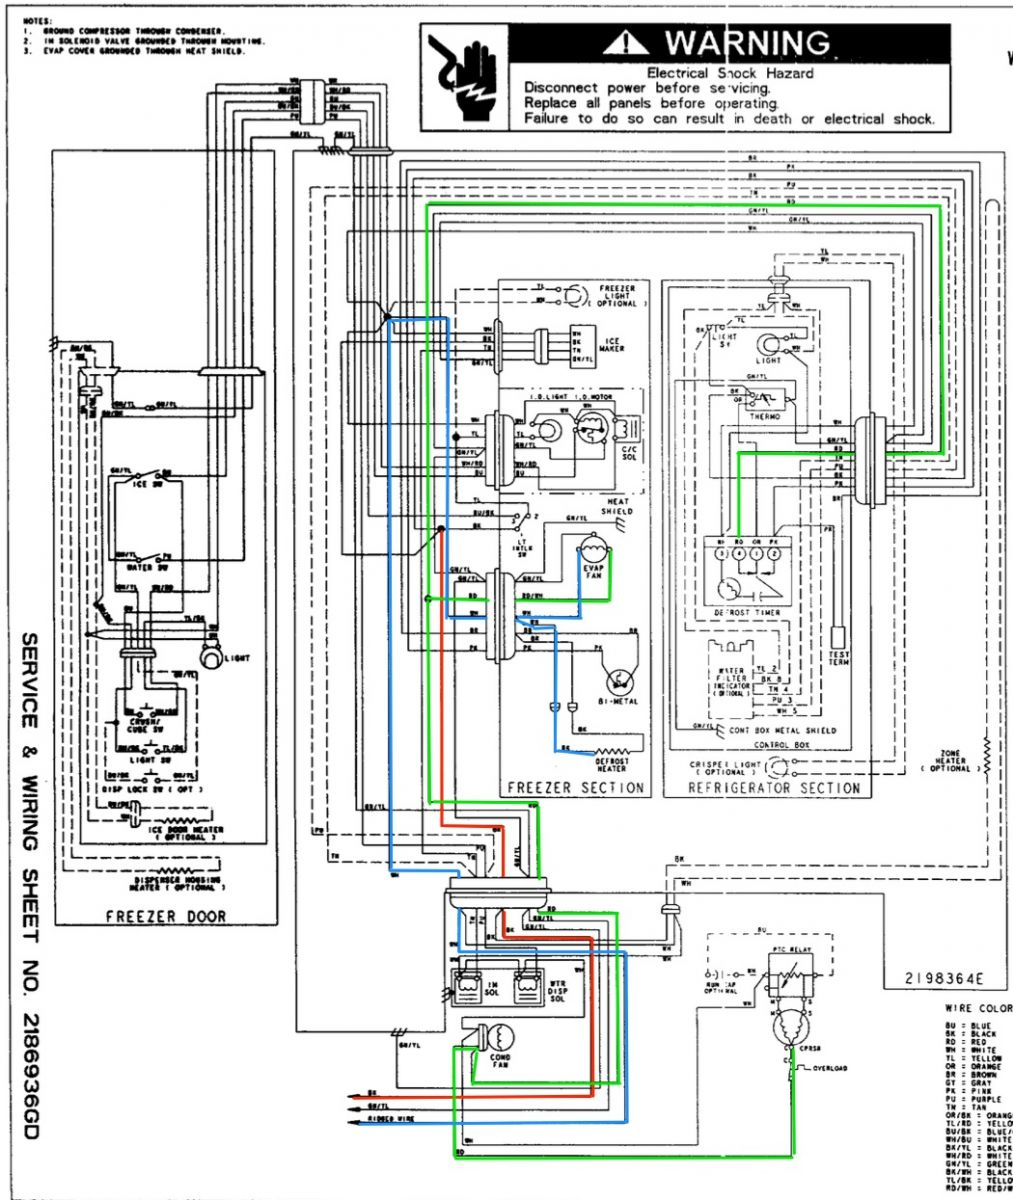 gallery_4_4_346879 whirlpool ed25rfxfw01 refrigerator wiring diagram the fridge compressors wiring diagram at bakdesigns.co